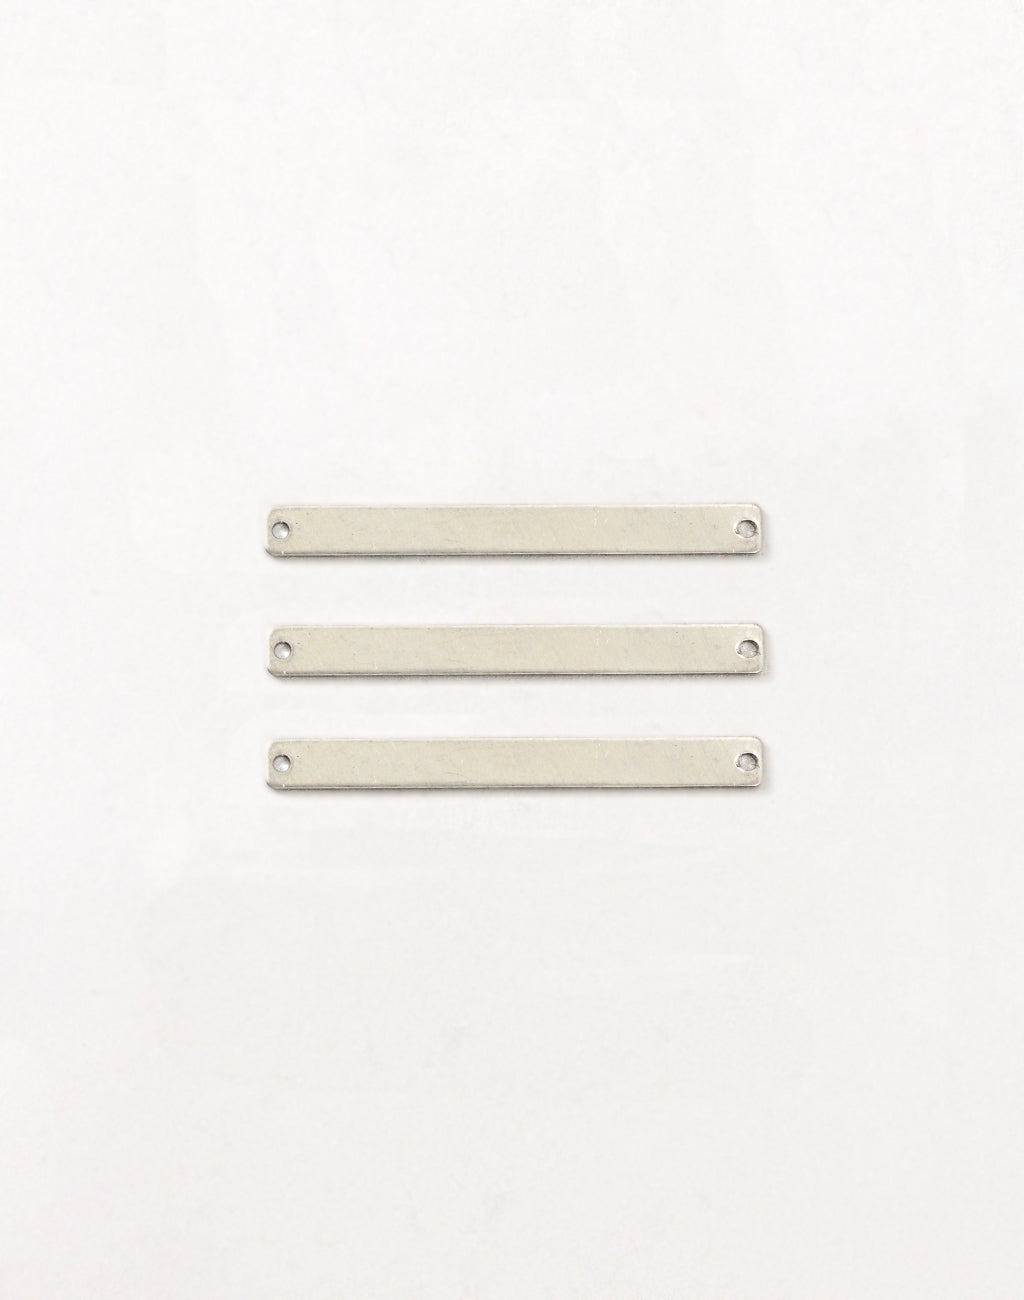 Rectangle, 41x4mm, 21ga, (3pcs)